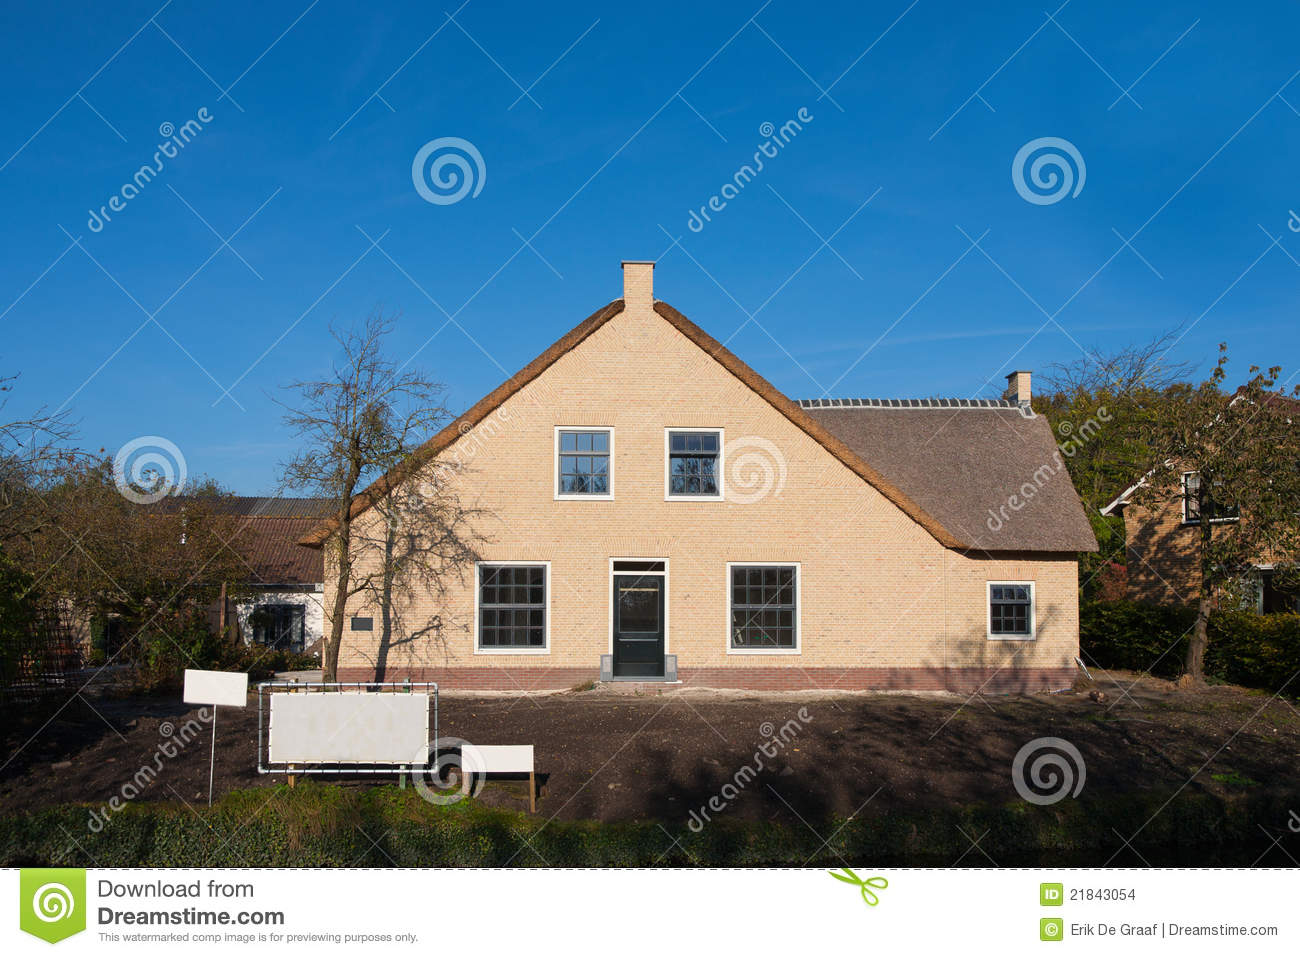 Dutch farm house stock images image 21843054 for Farm house netherlands